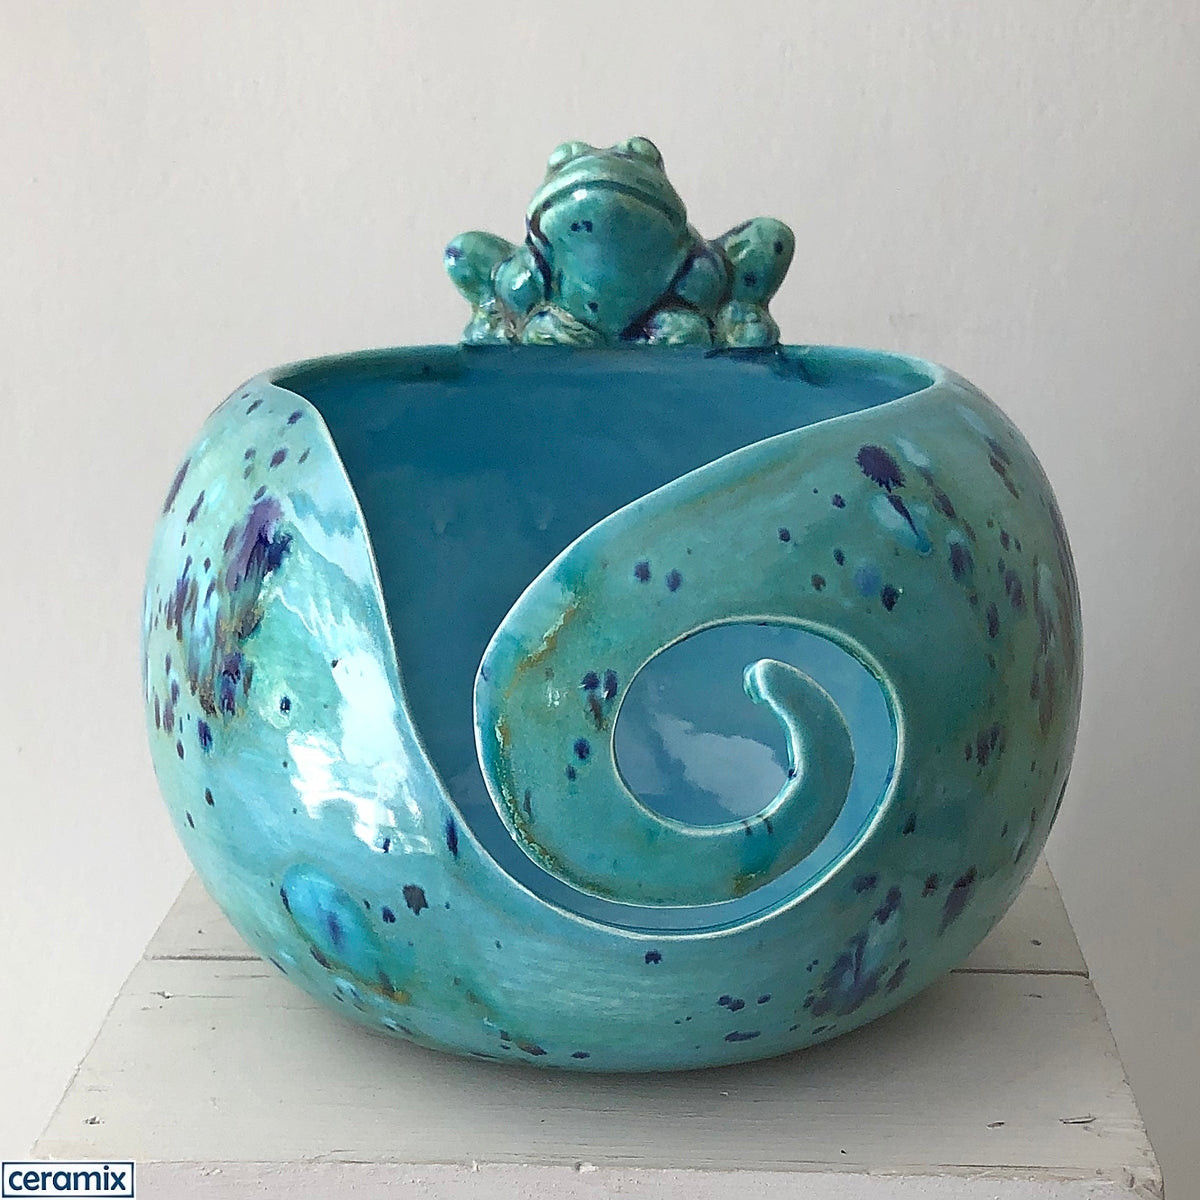 Marsh Frog Large Round Yarn Bowl handmade at the Ceramix pottery in South Africa